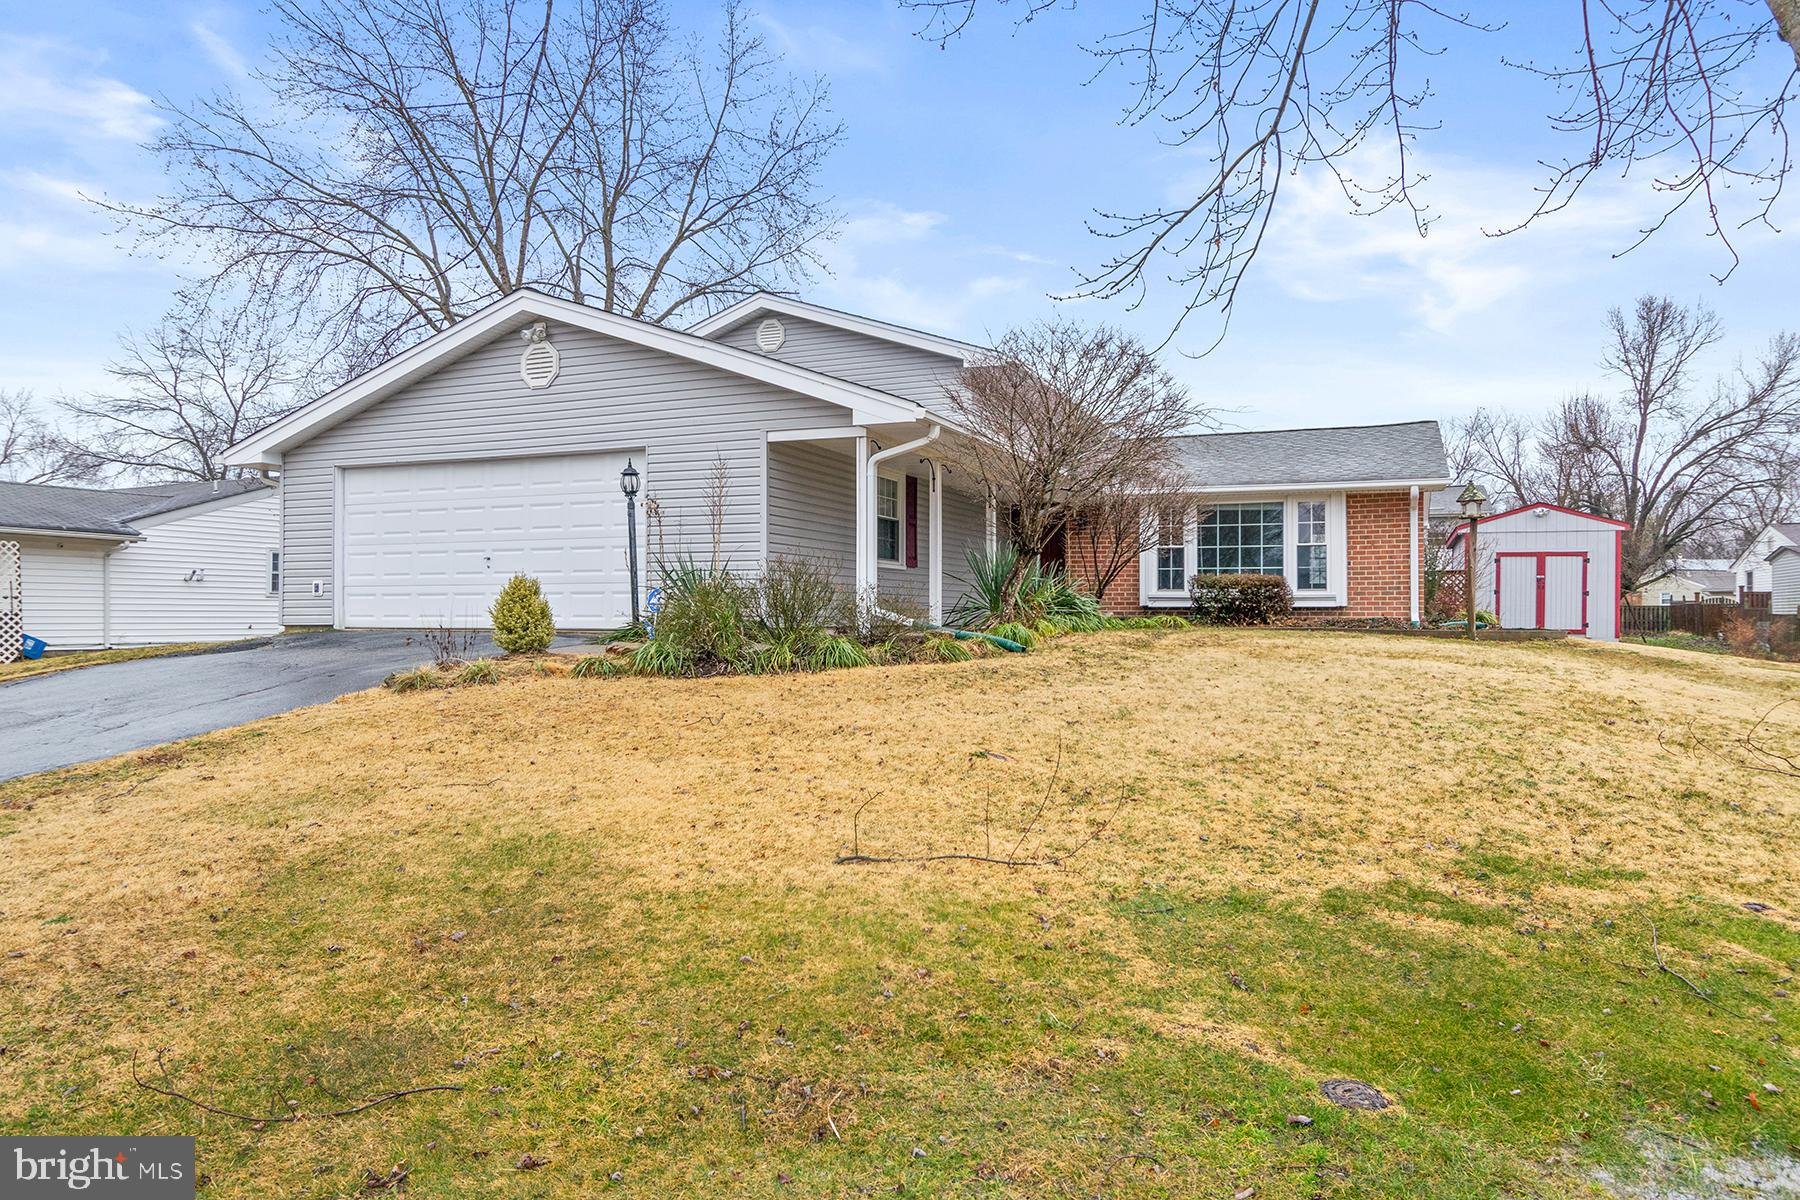 YOUR SEARCH IS OVER! THIS HOME IS TURNKEY AND READY FOR YOUR PICKIEST BUYER! LARGE AND OPEN FLOORPLA